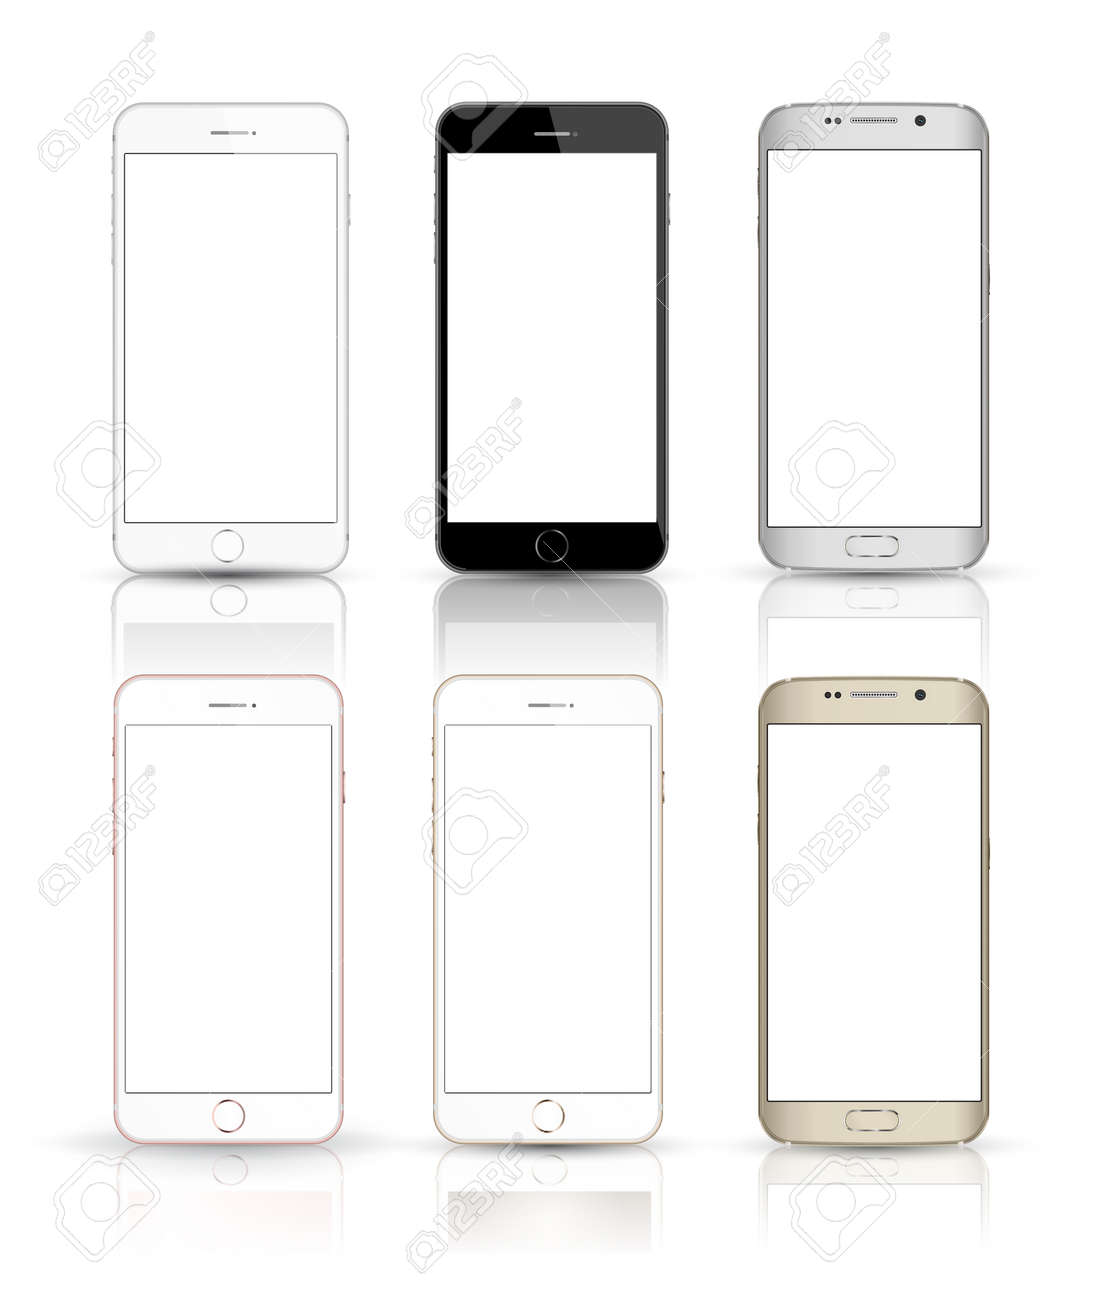 New realistic mobile phone smartphone collection iphon style mockups with blank screen isolated on white background. - 53438767